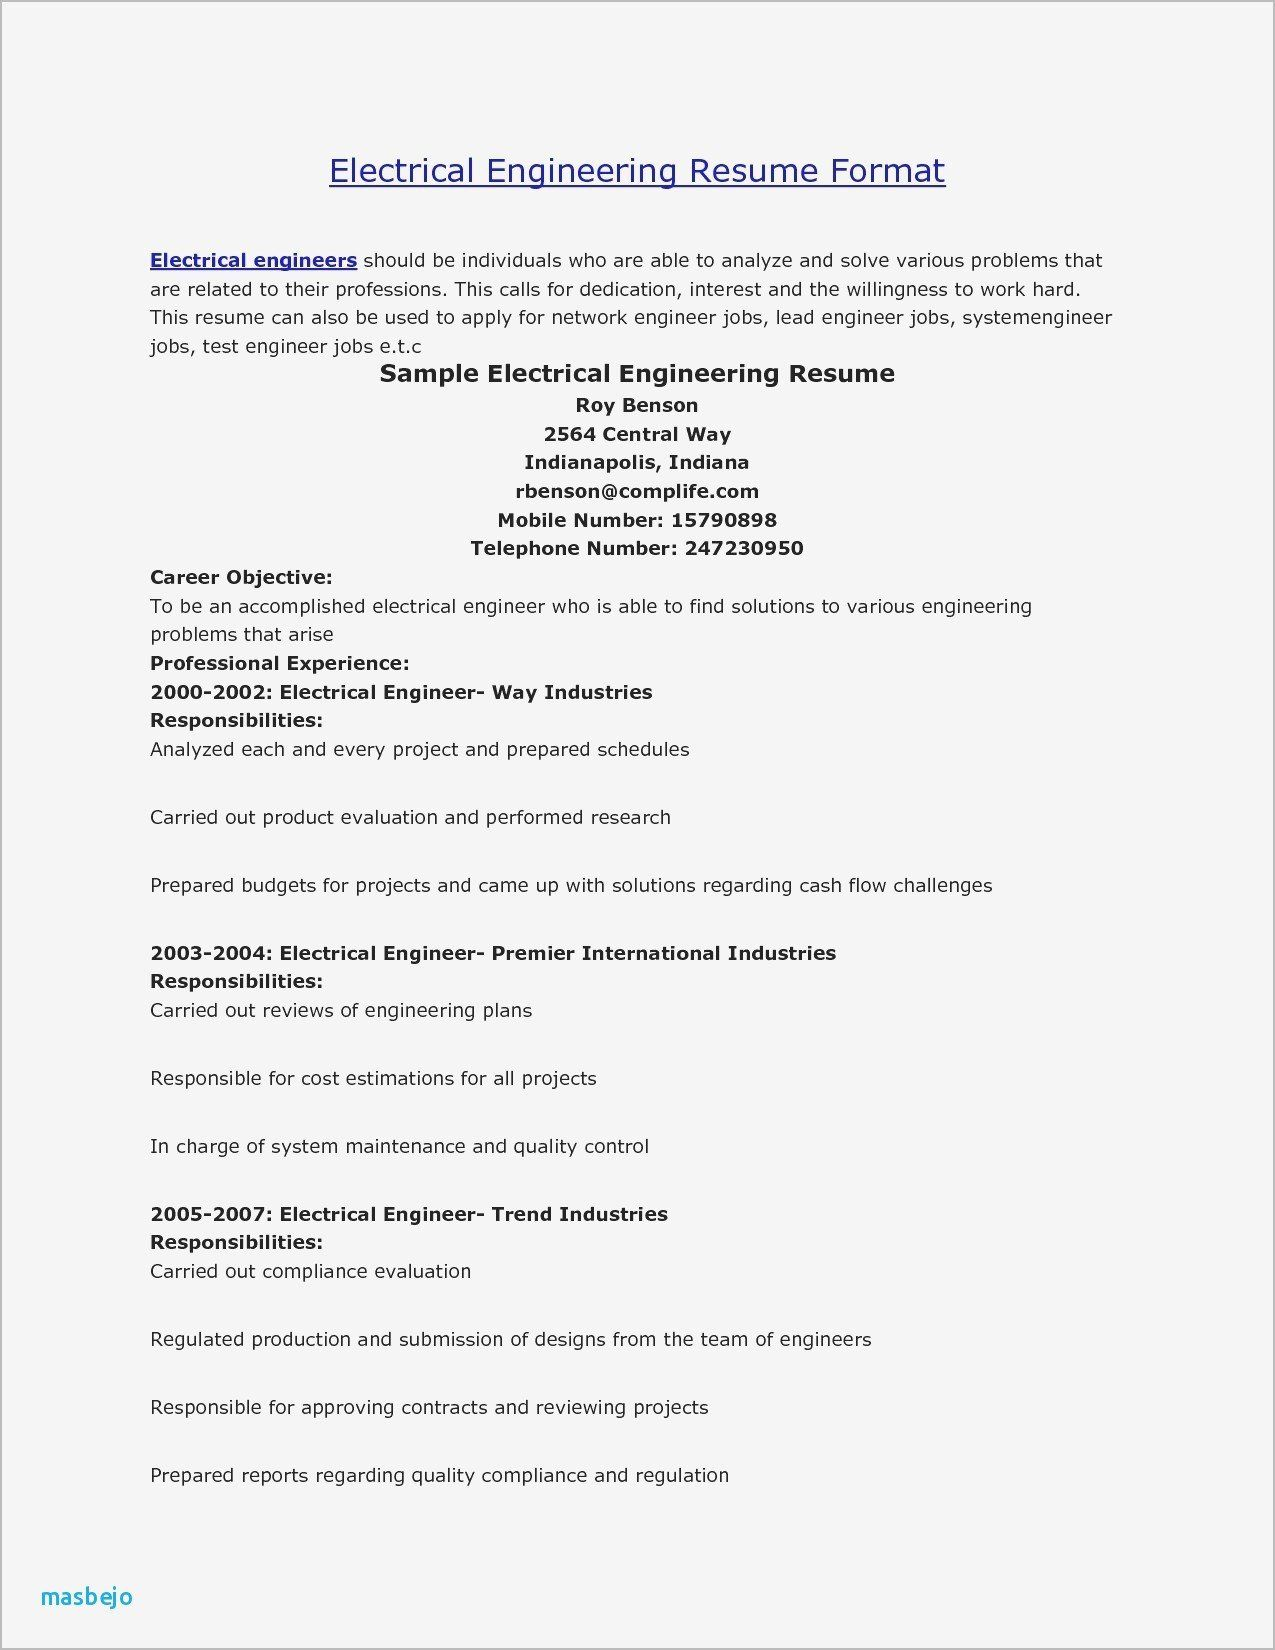 32 Beautiful Electrical Engineer Resume Sample in 2020